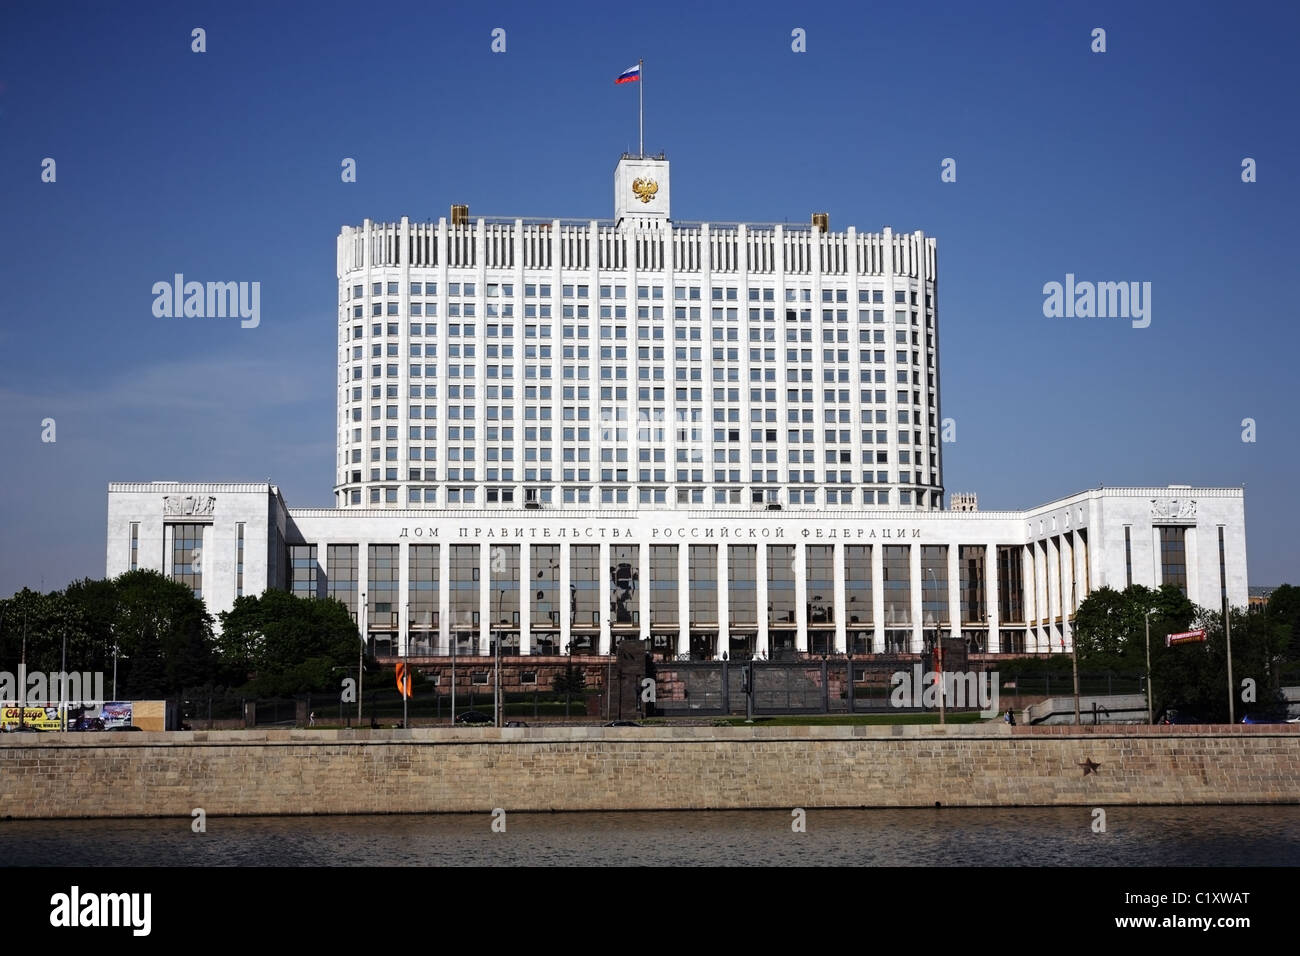 """The Russian White House"" - Government House of the Russian Federation. Moscow. Spring 2010. - Stock Image"